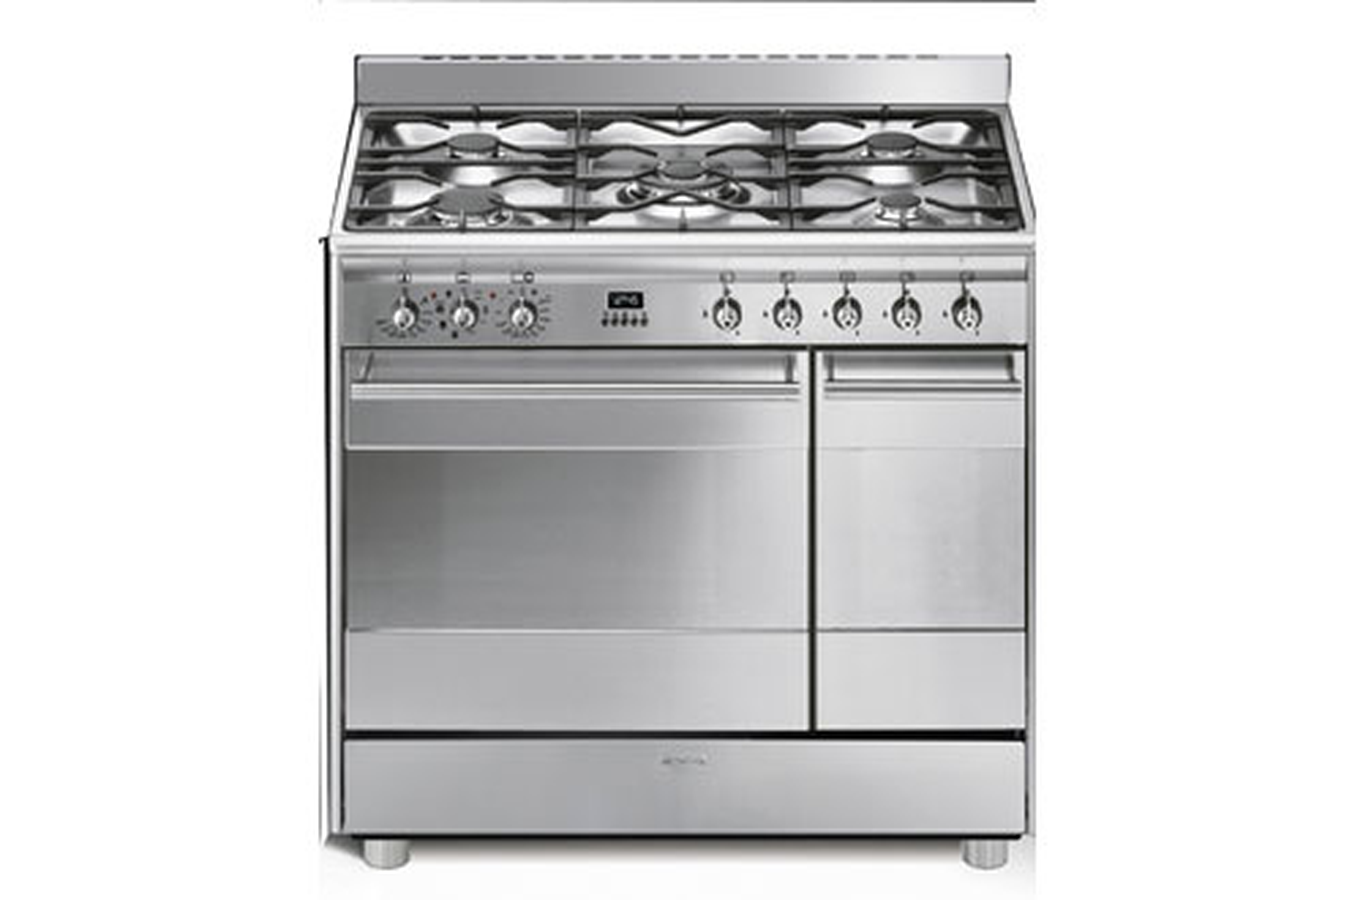 Piano de cuisson smeg scb92mx8 inox 3415376 darty - Piano cuisine induction ...